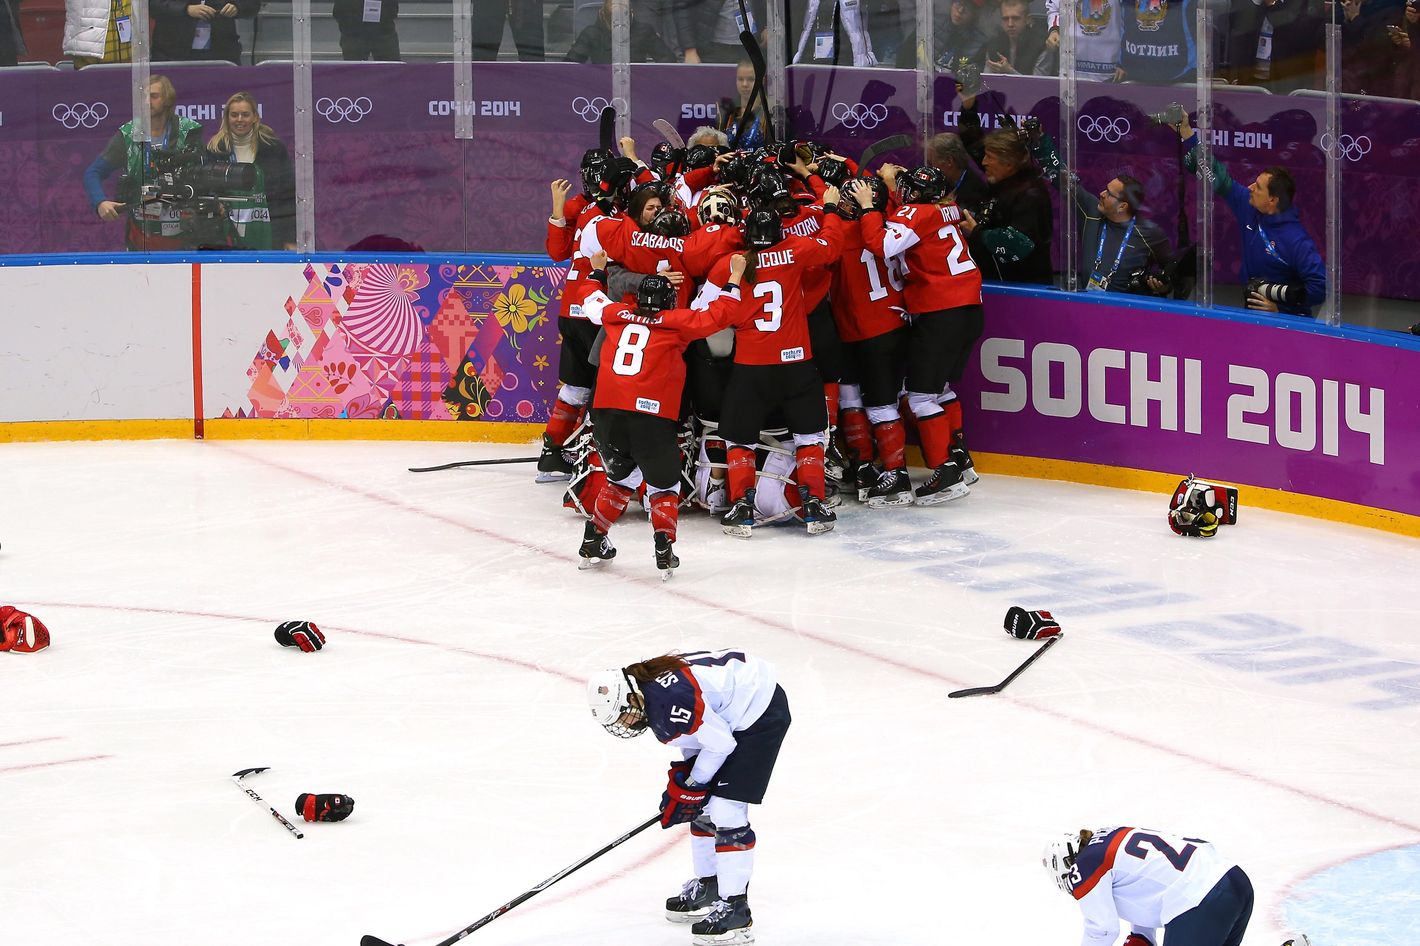 Marie-Philip Poulin #29 of Canada celebrates with teammates after scoring the game-winning goal against the United States in overtime as Anne Schleper #15 and Michelle Picard #23 of the United States react during the Ice Hockey Women's Gold Medal Game on day 13 of the Sochi 2014 Winter Olympics at Bolshoy Ice Dome on February 20, 2014 in Sochi, Russia.